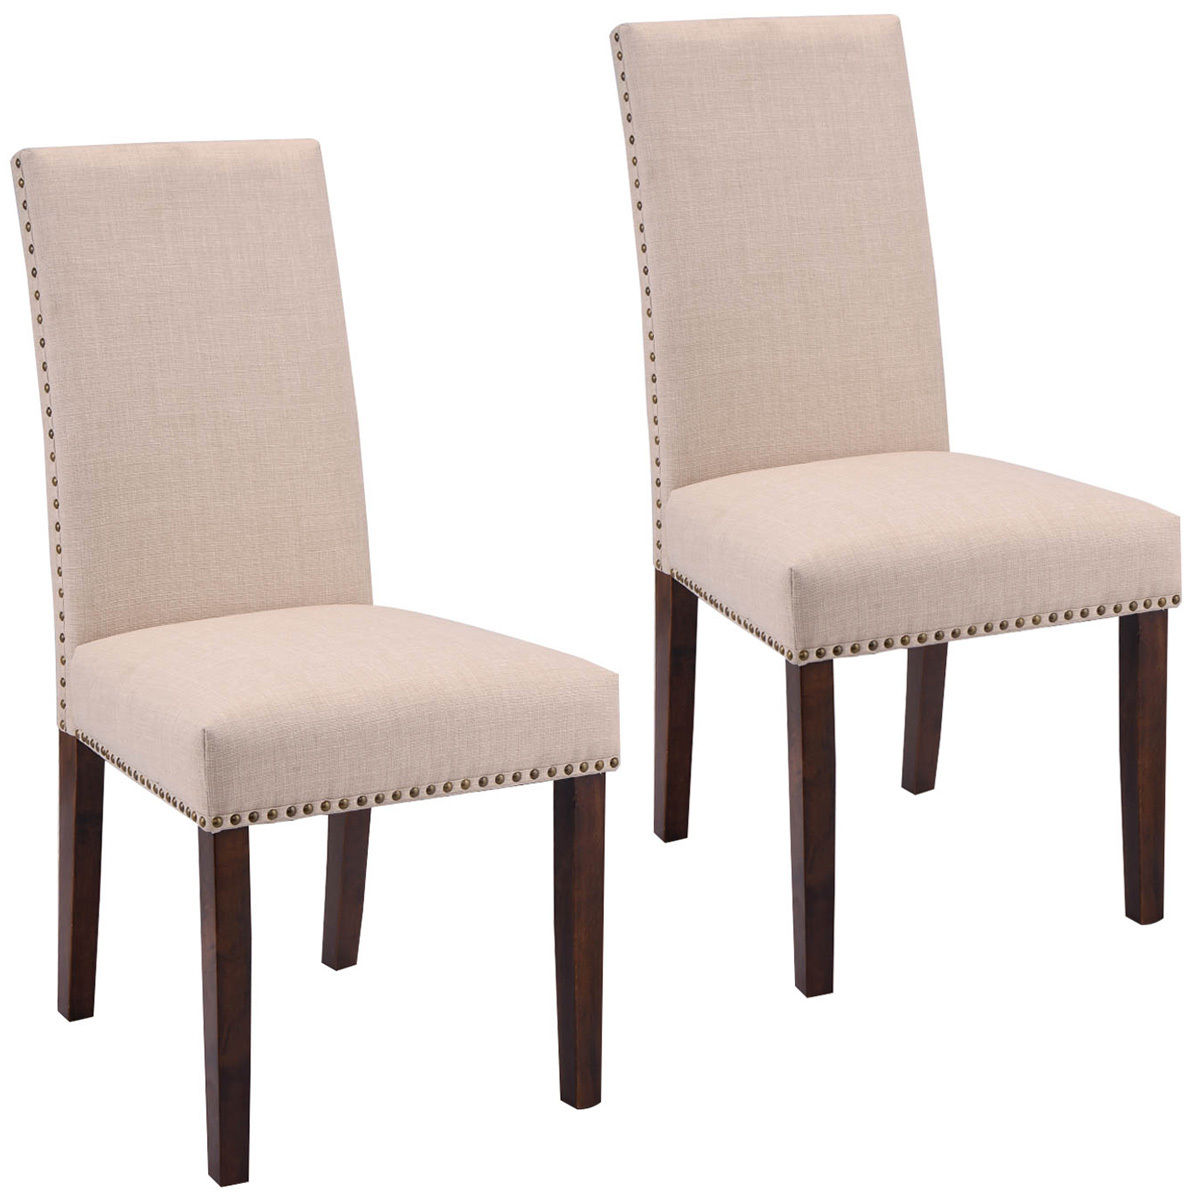 Costway Set Of 2 Dining Chairs Fabric Upholstered High Back Armless Home Furniture by Costway